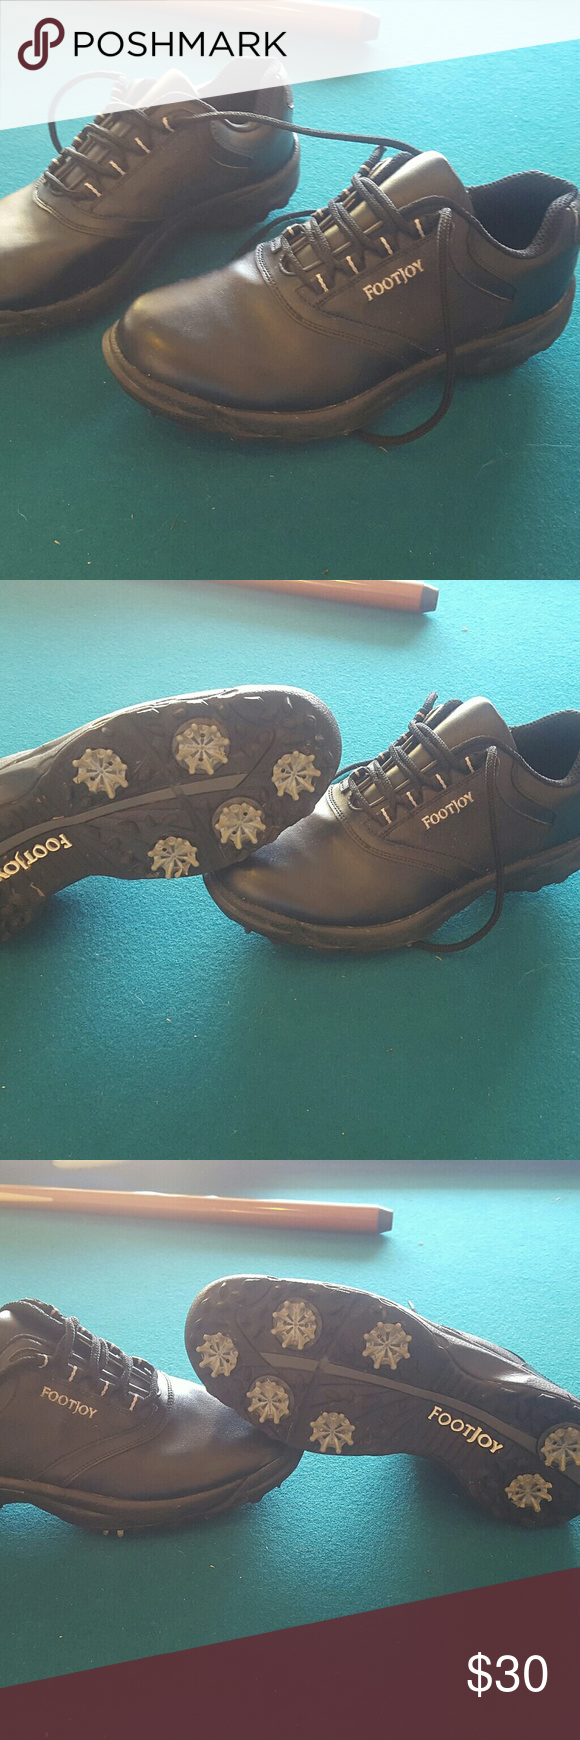 Footjoy golf shoes size 9.5 Footjoys are the number shoes in the game of golf these are super comfortable clean and breathable waterproof leather tons of traction only worn twice retails for $159.99 FootJoy Shoes Athletic Shoes #shoegame